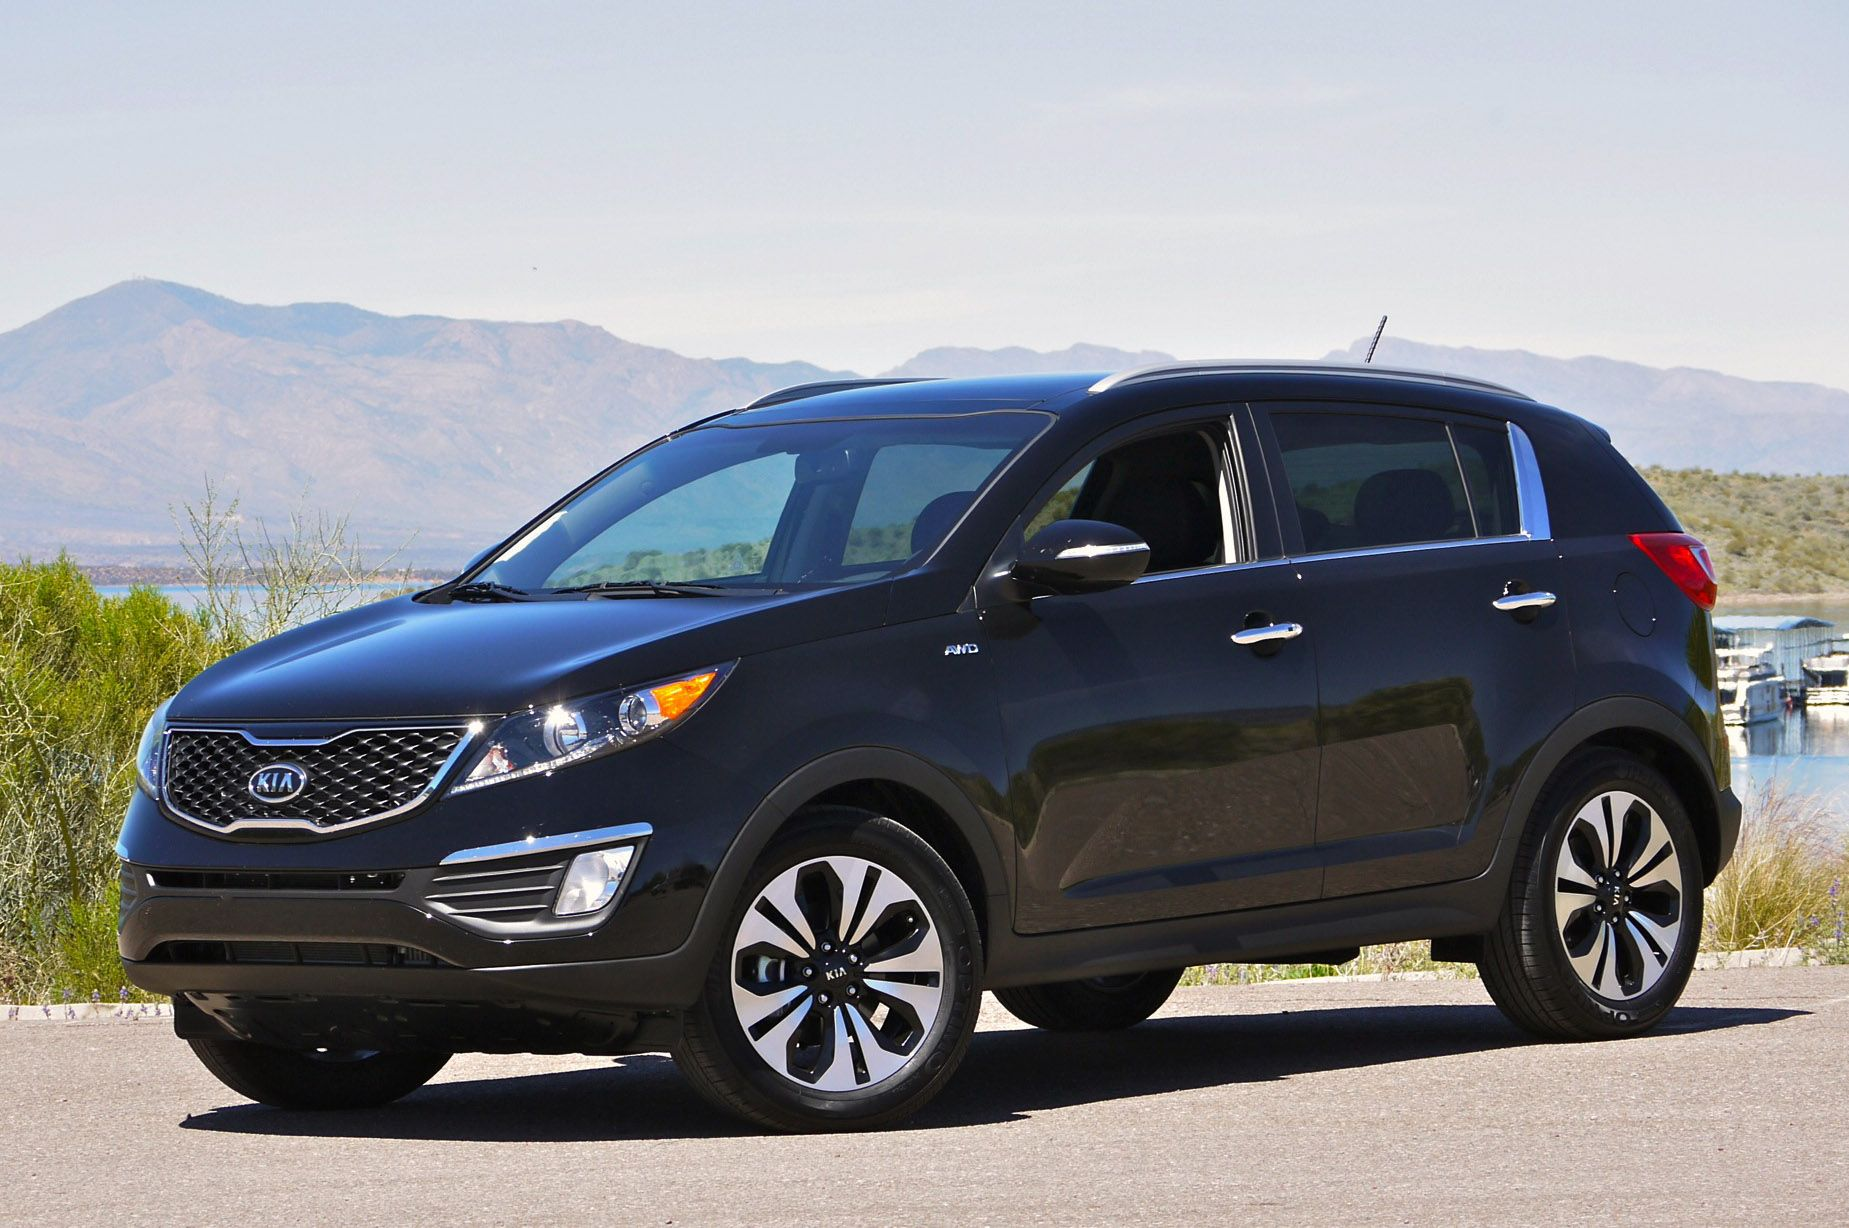 2014 kia sportage sx 1 hd wallpaper kia pinterest kia sportage and cars. Black Bedroom Furniture Sets. Home Design Ideas